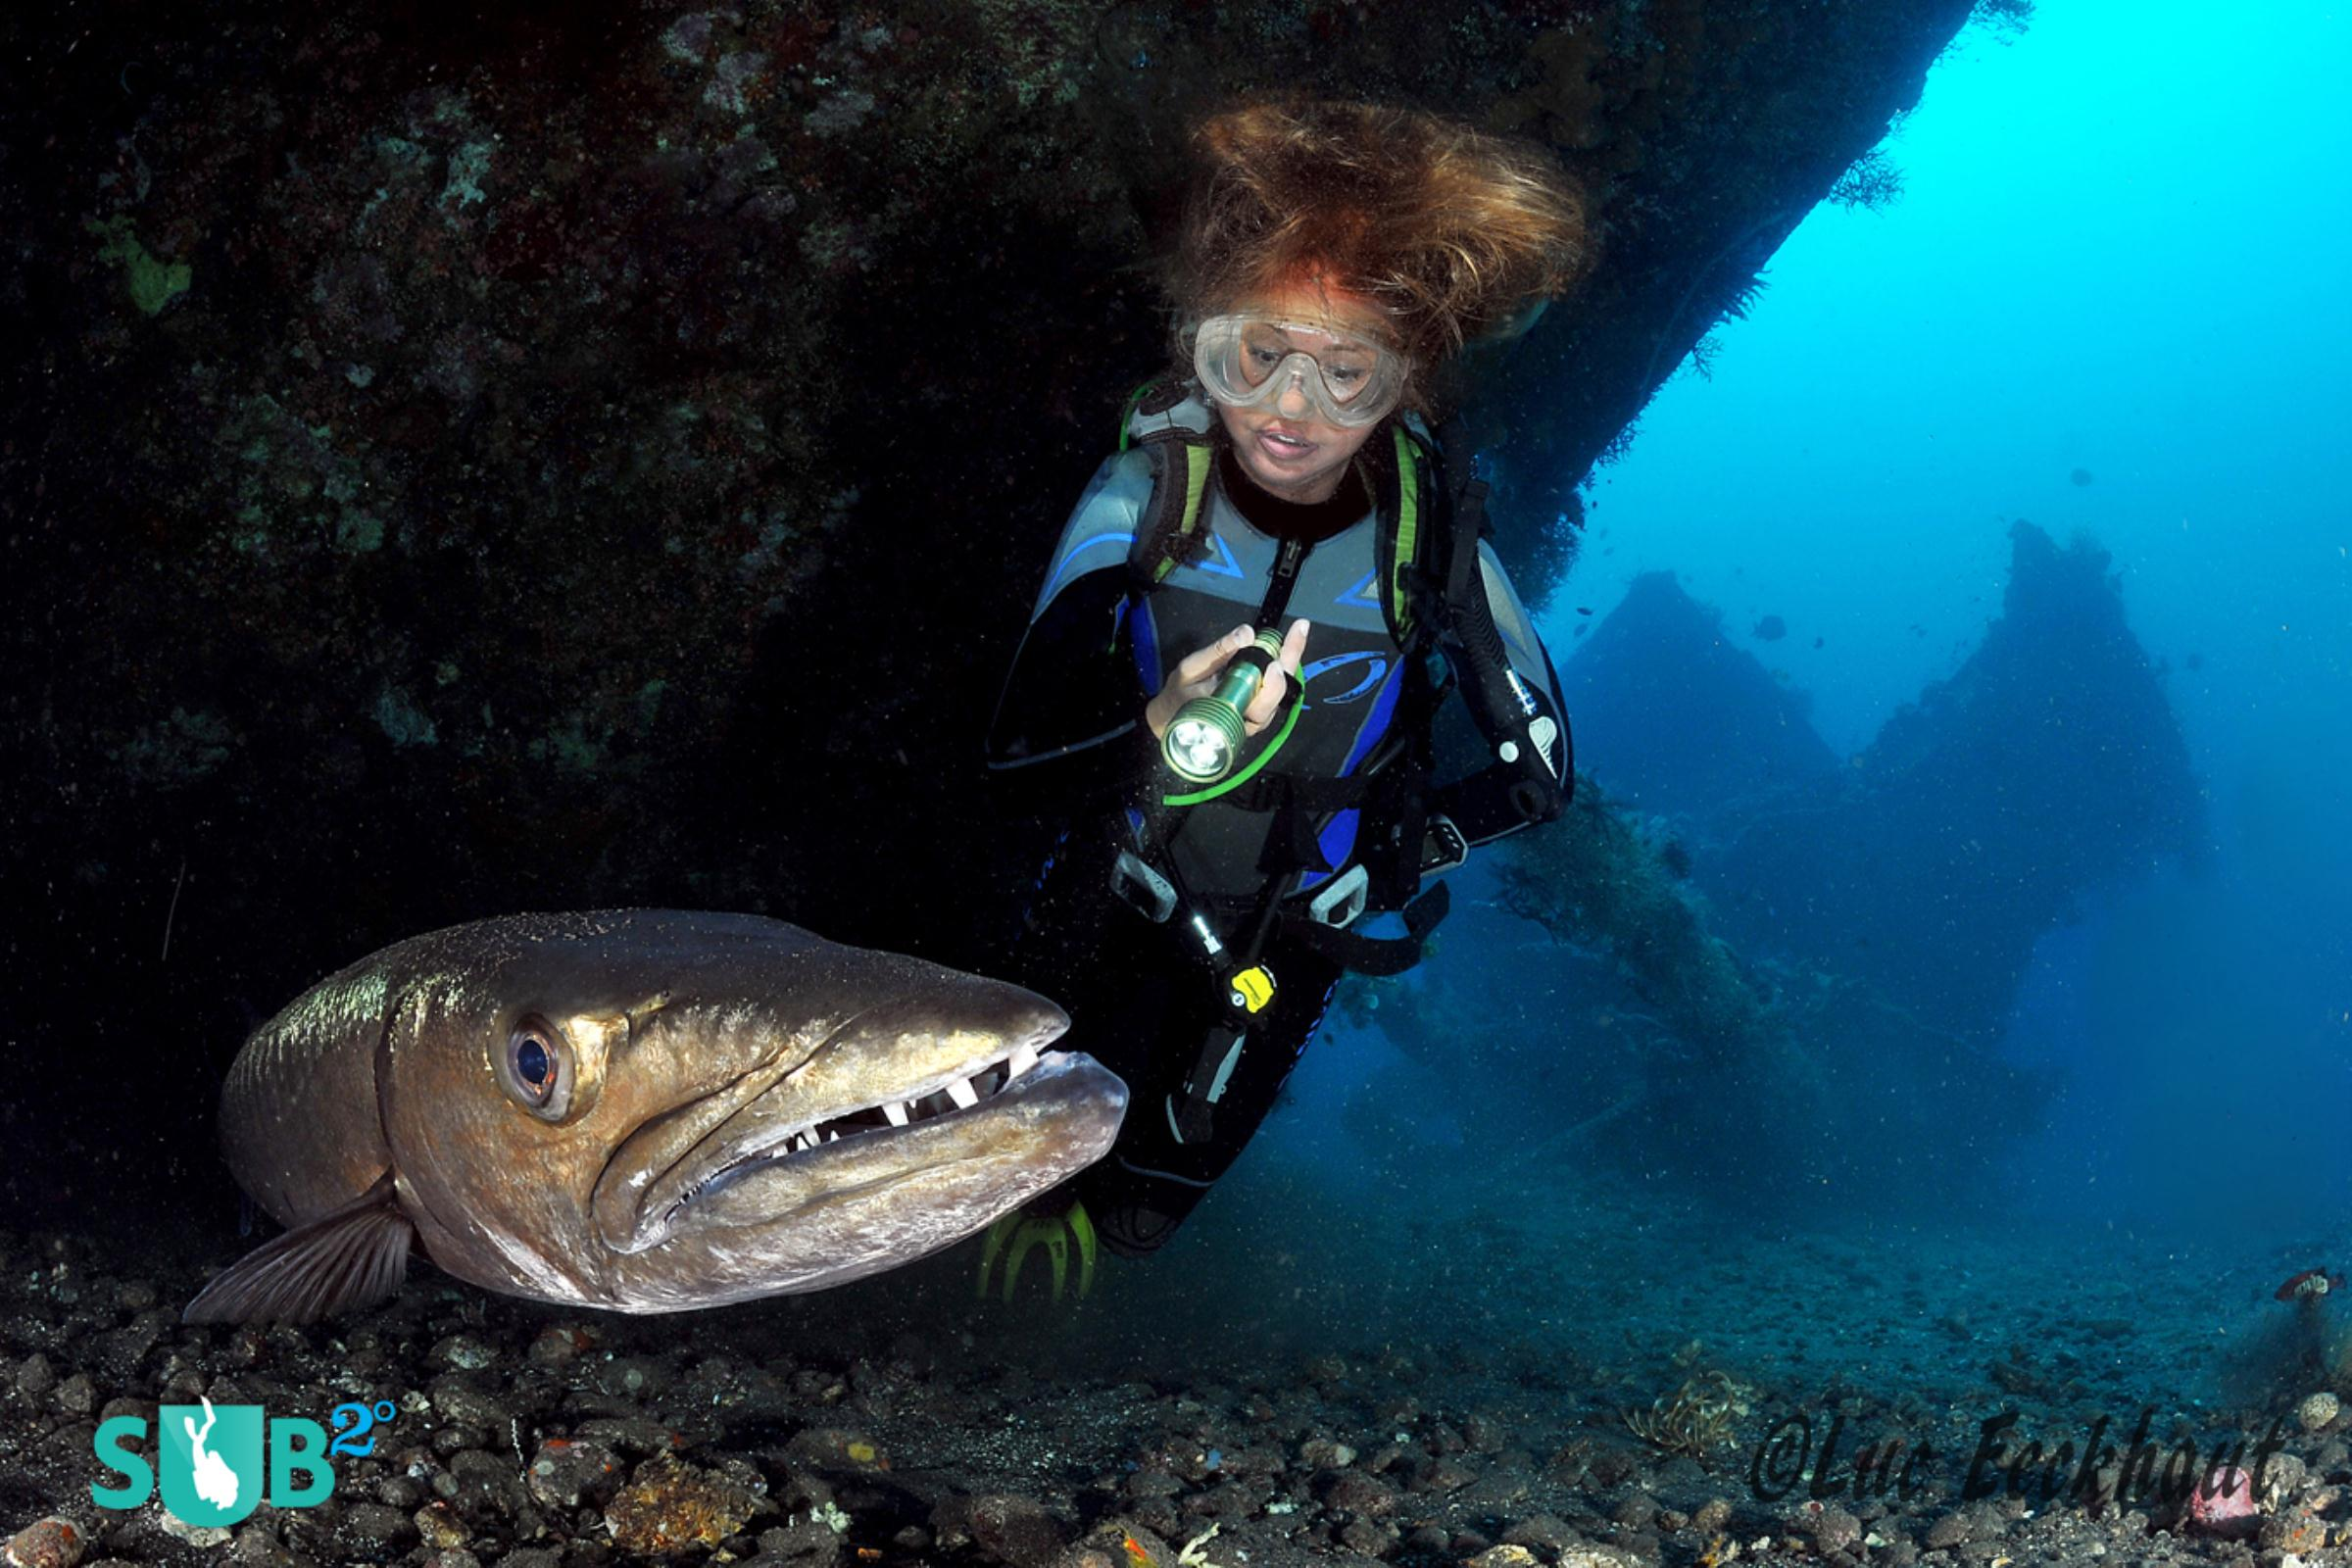 Sam, the Giant Barracuda, and Underwater Model